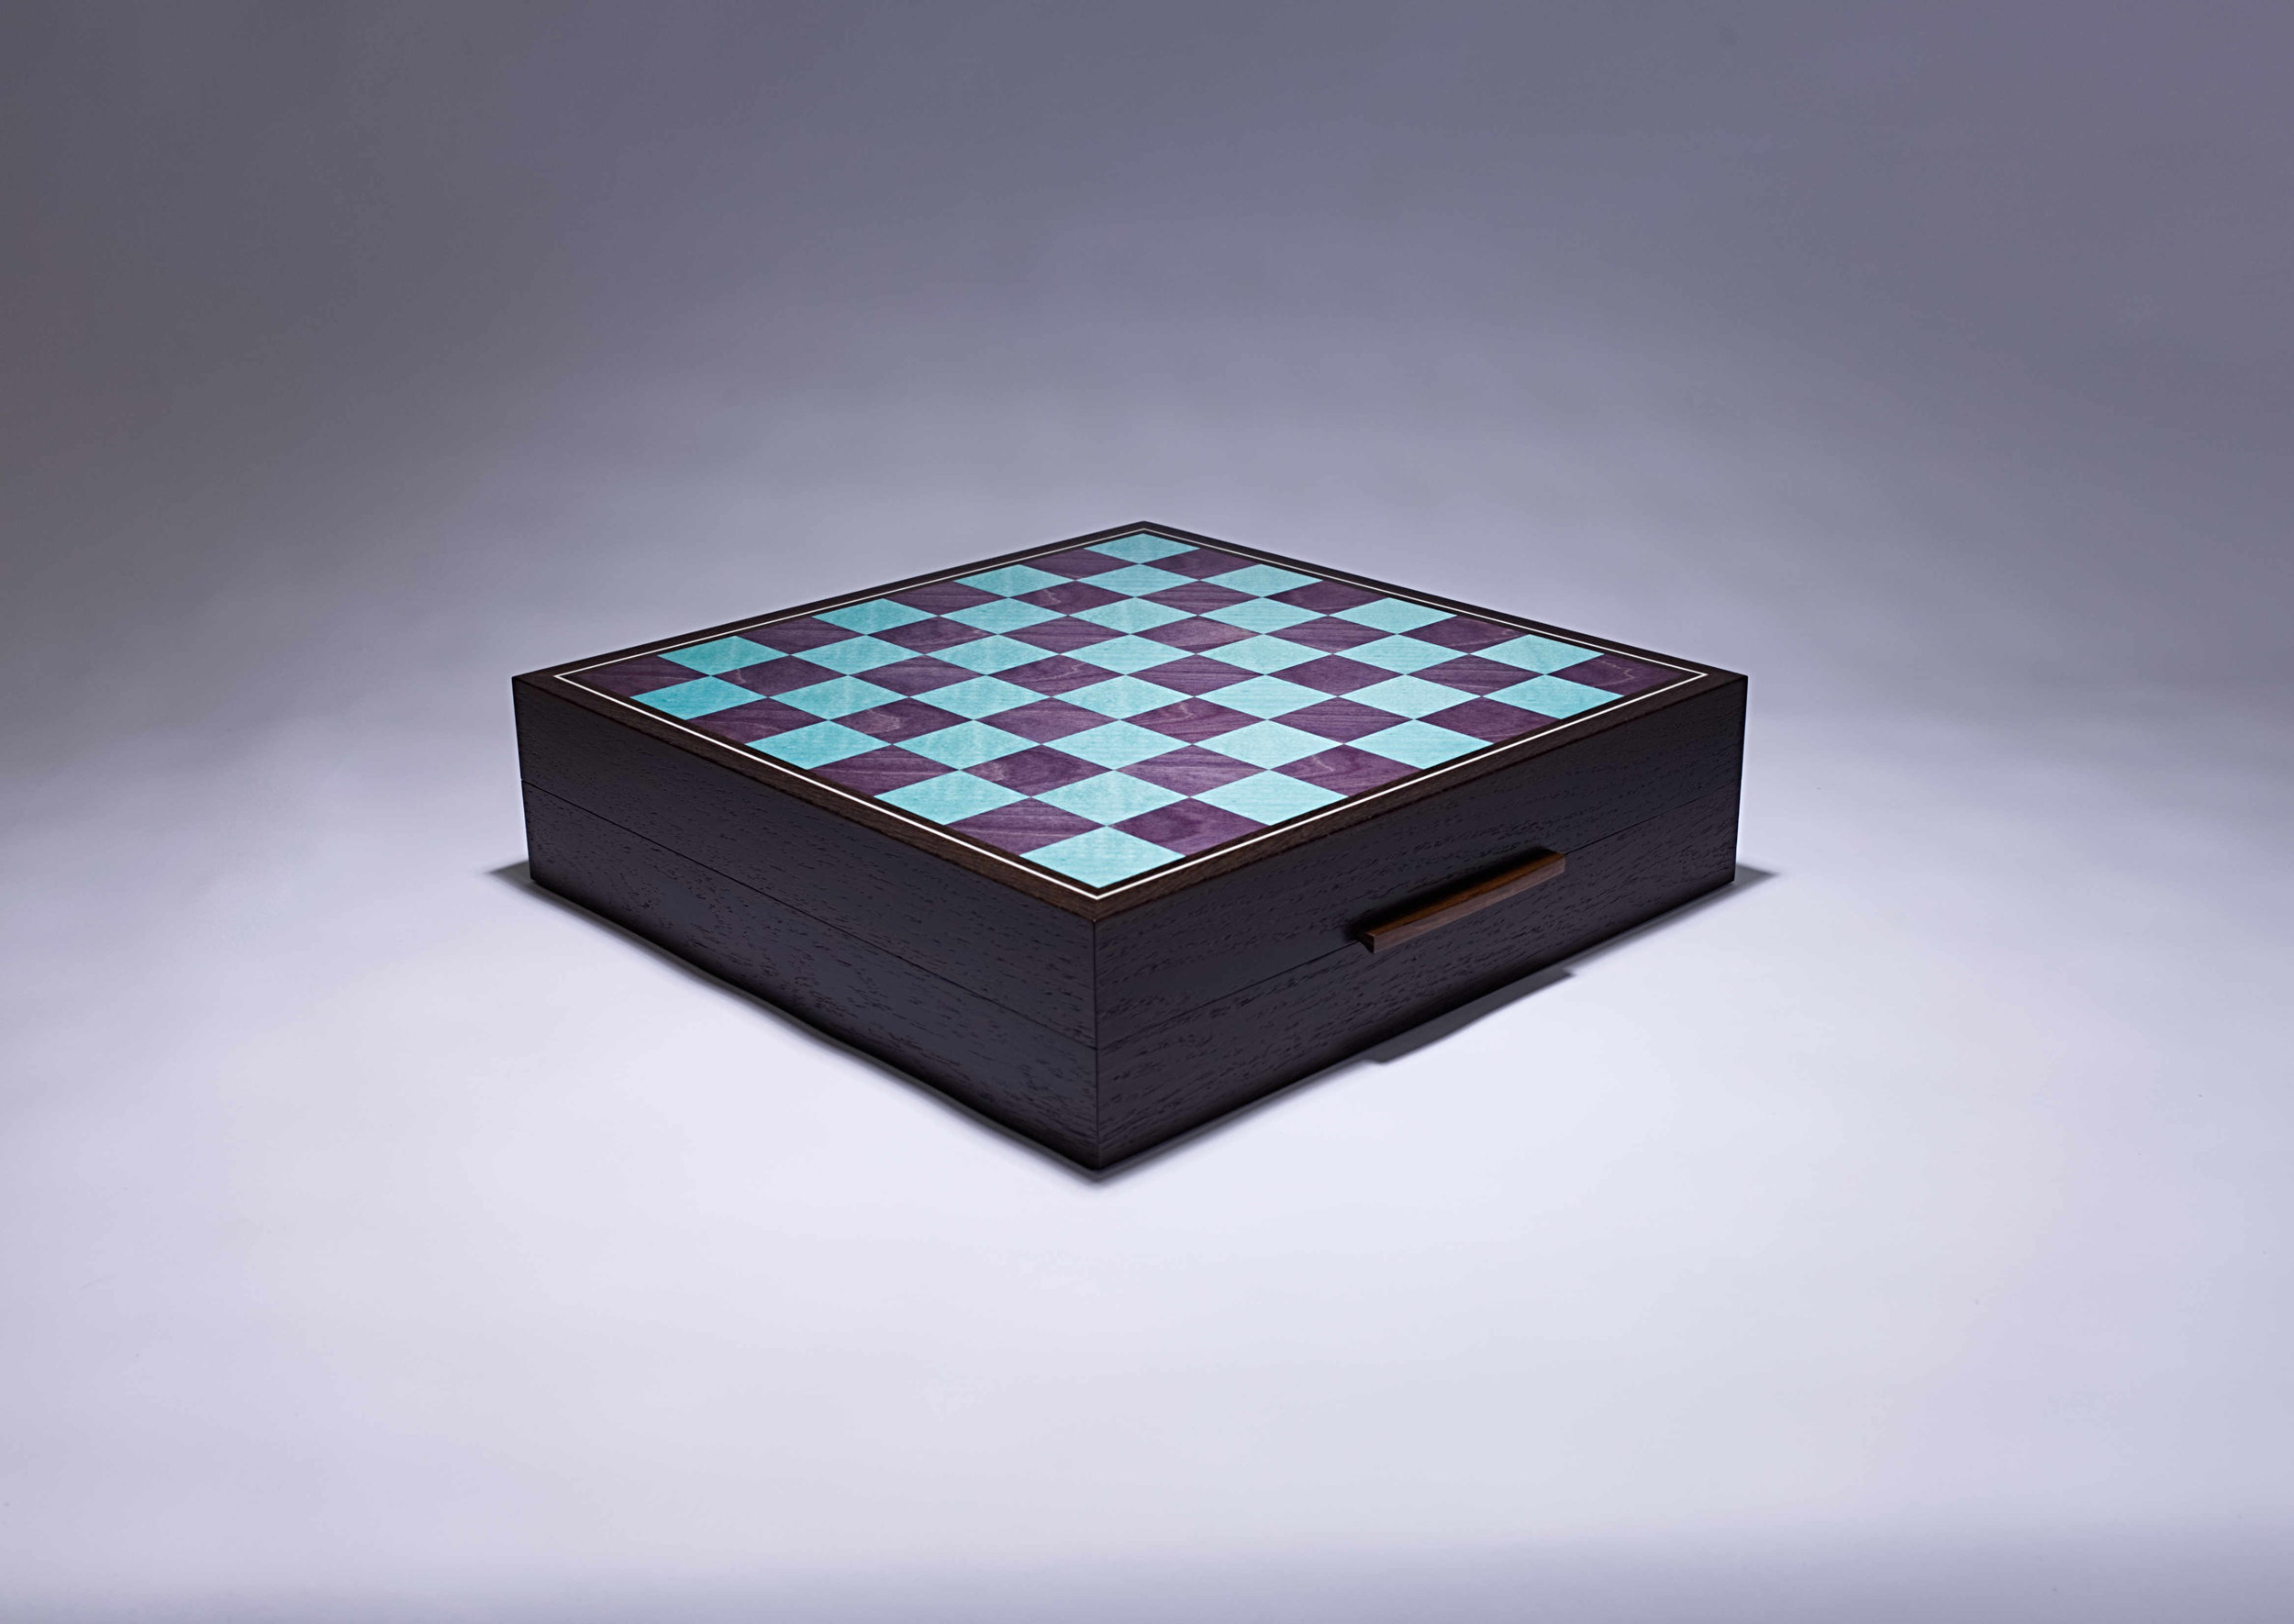 Turquoise and Violet Games Box